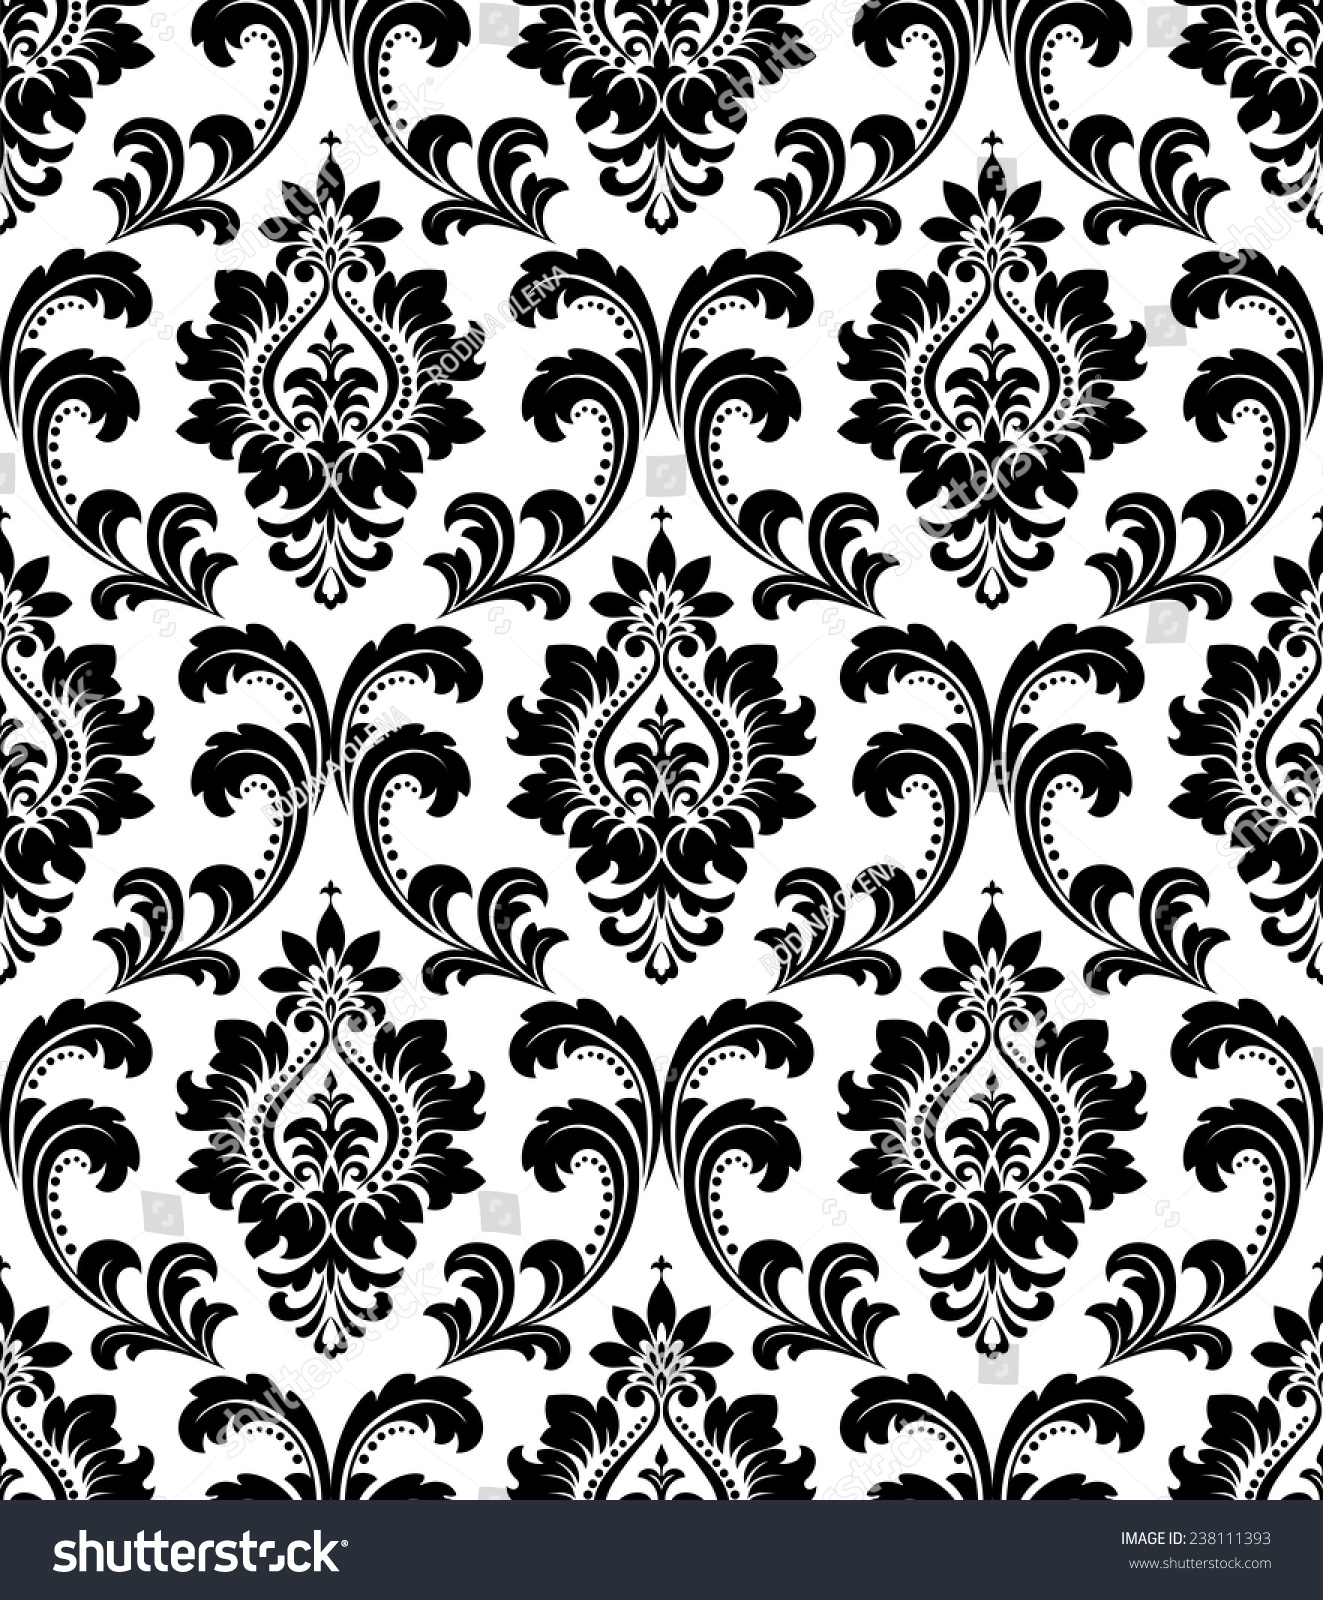 Damask Seamless Floral Pattern Royal Wallpaper Stock Vector Royalty